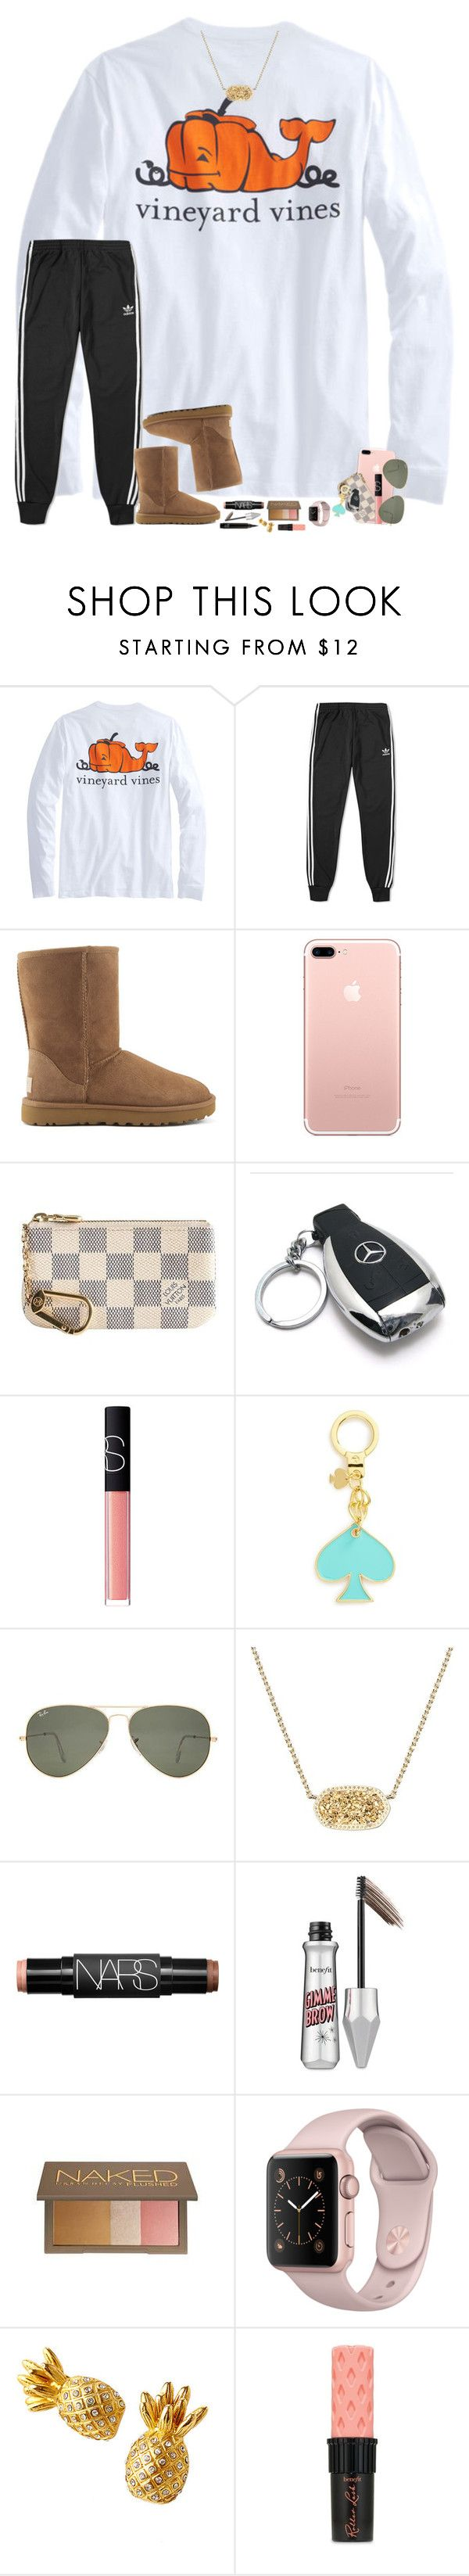 """happy Halloween!! 👻🎃"" by hopemarlee ❤ liked on Polyvore featuring adidas, UGG Australia, Louis Vuitton, Mercedes-Benz, NARS Cosmetics, Kate Spade, Ray-Ban, Kendra Scott, Benefit and Urban Decay"